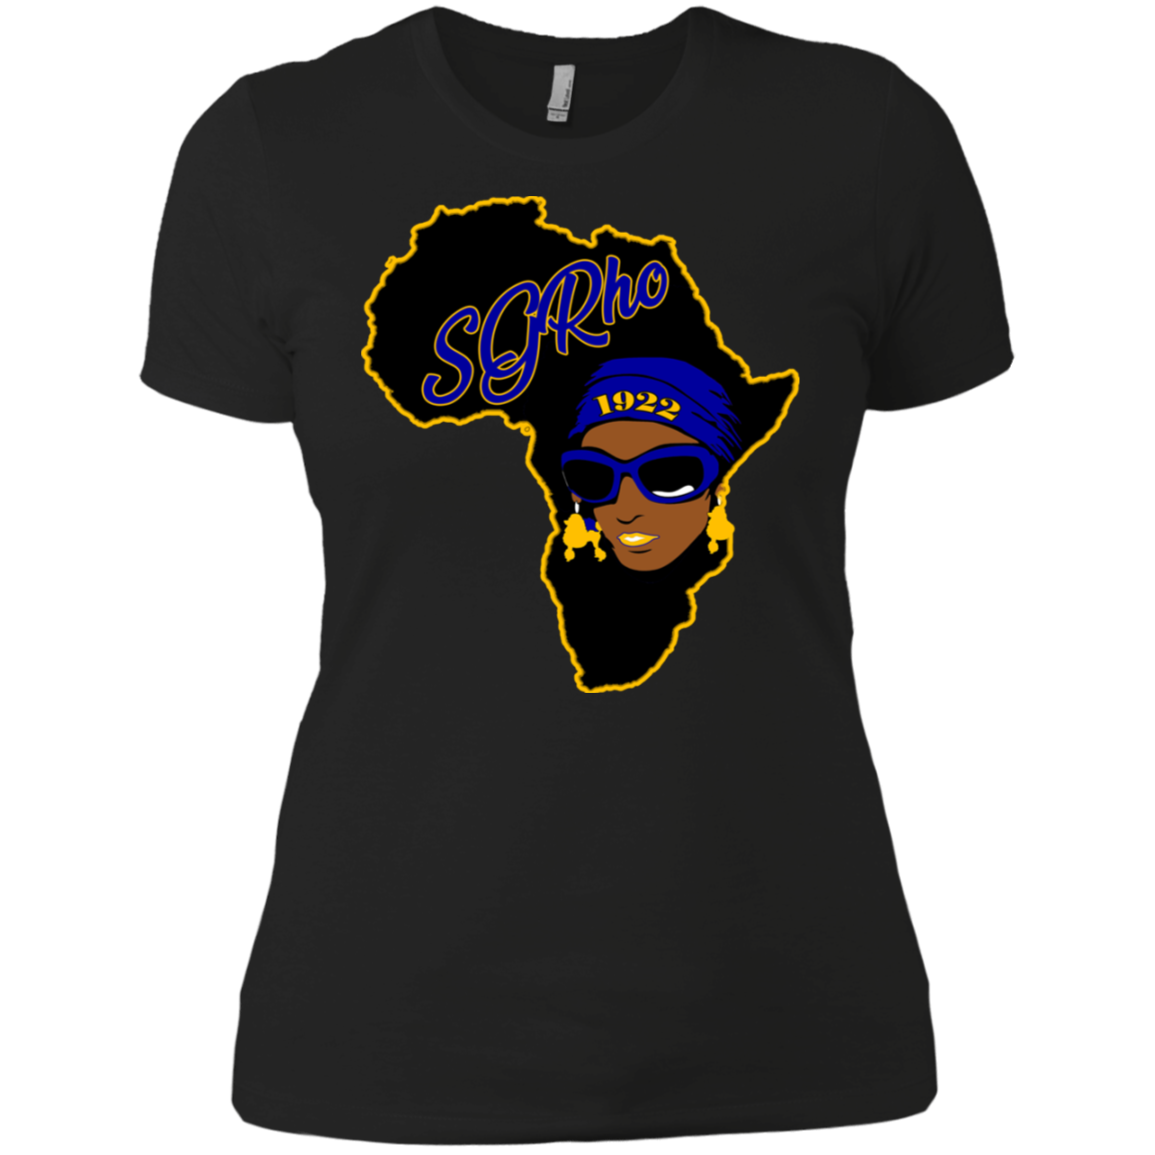 African Sgrho Ladies' Boyfriend T-Shirt